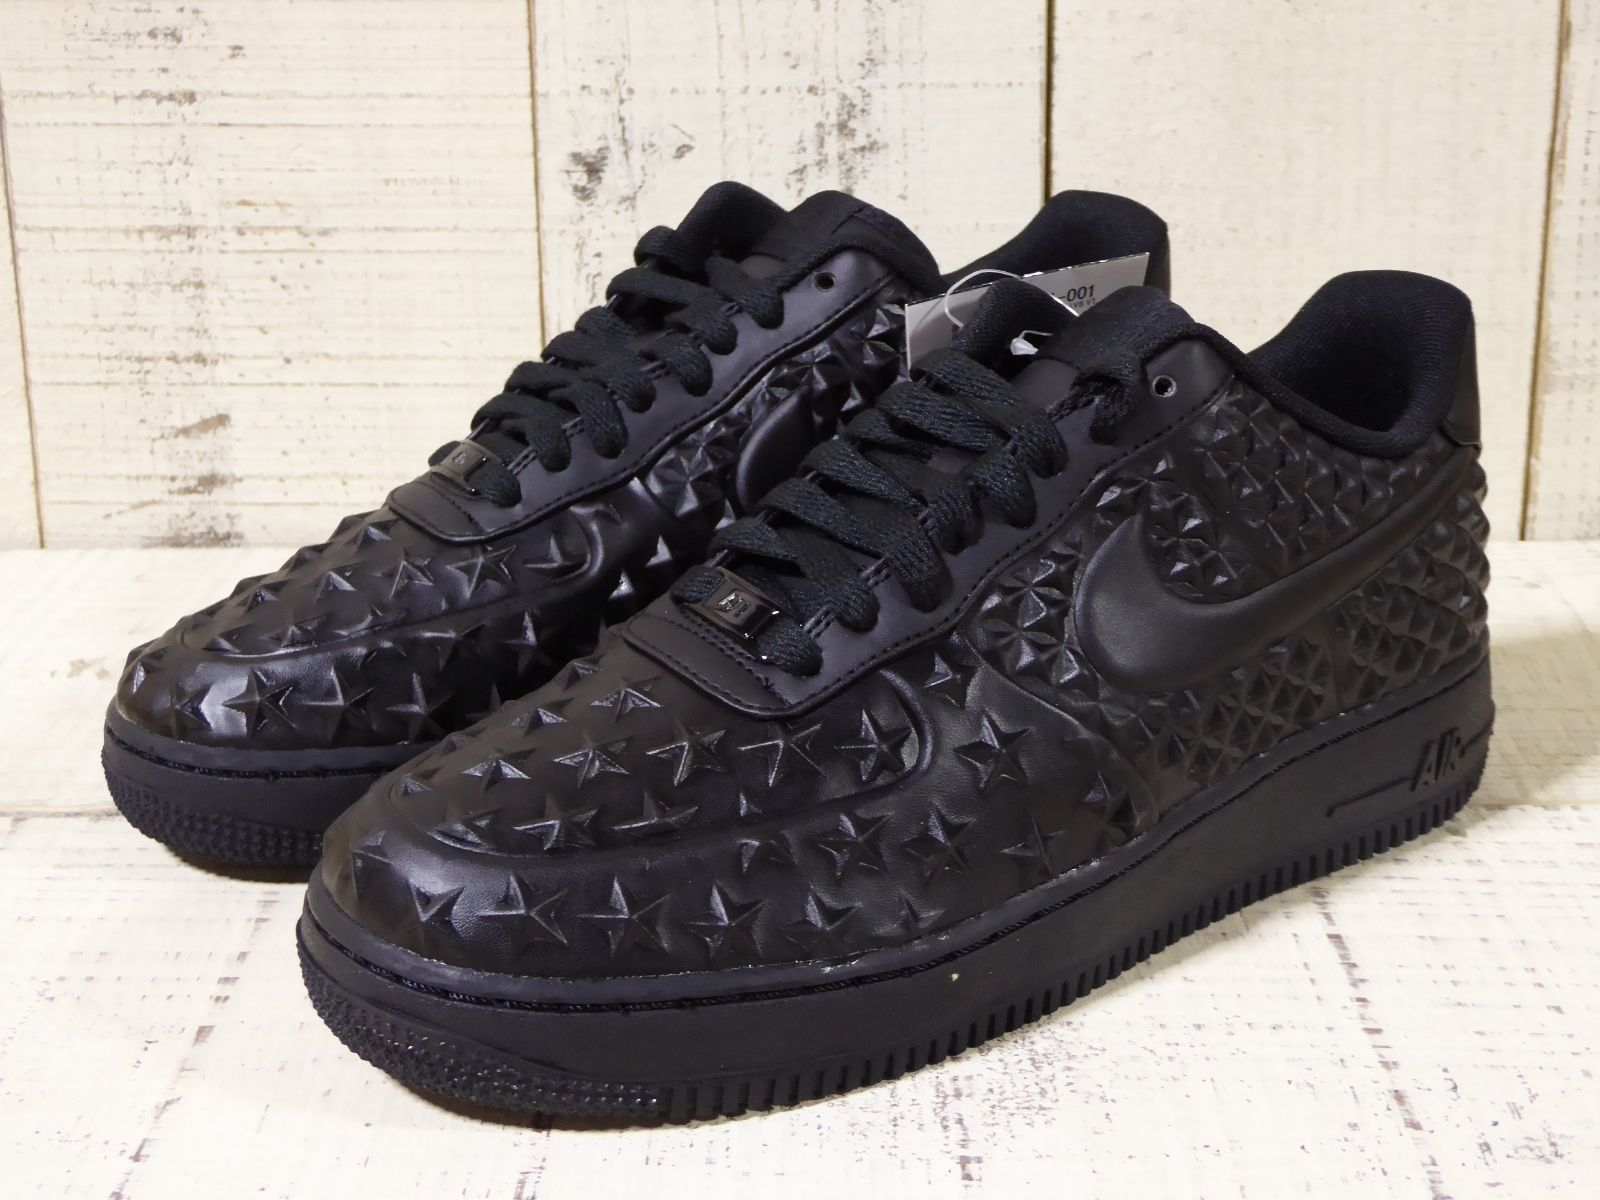 finest selection 202a8 4eef5 NIKE AIR FORCE 1 LOW LV8 VT INDEPENDENCE DAY BLACK 789104 001 $180 ...